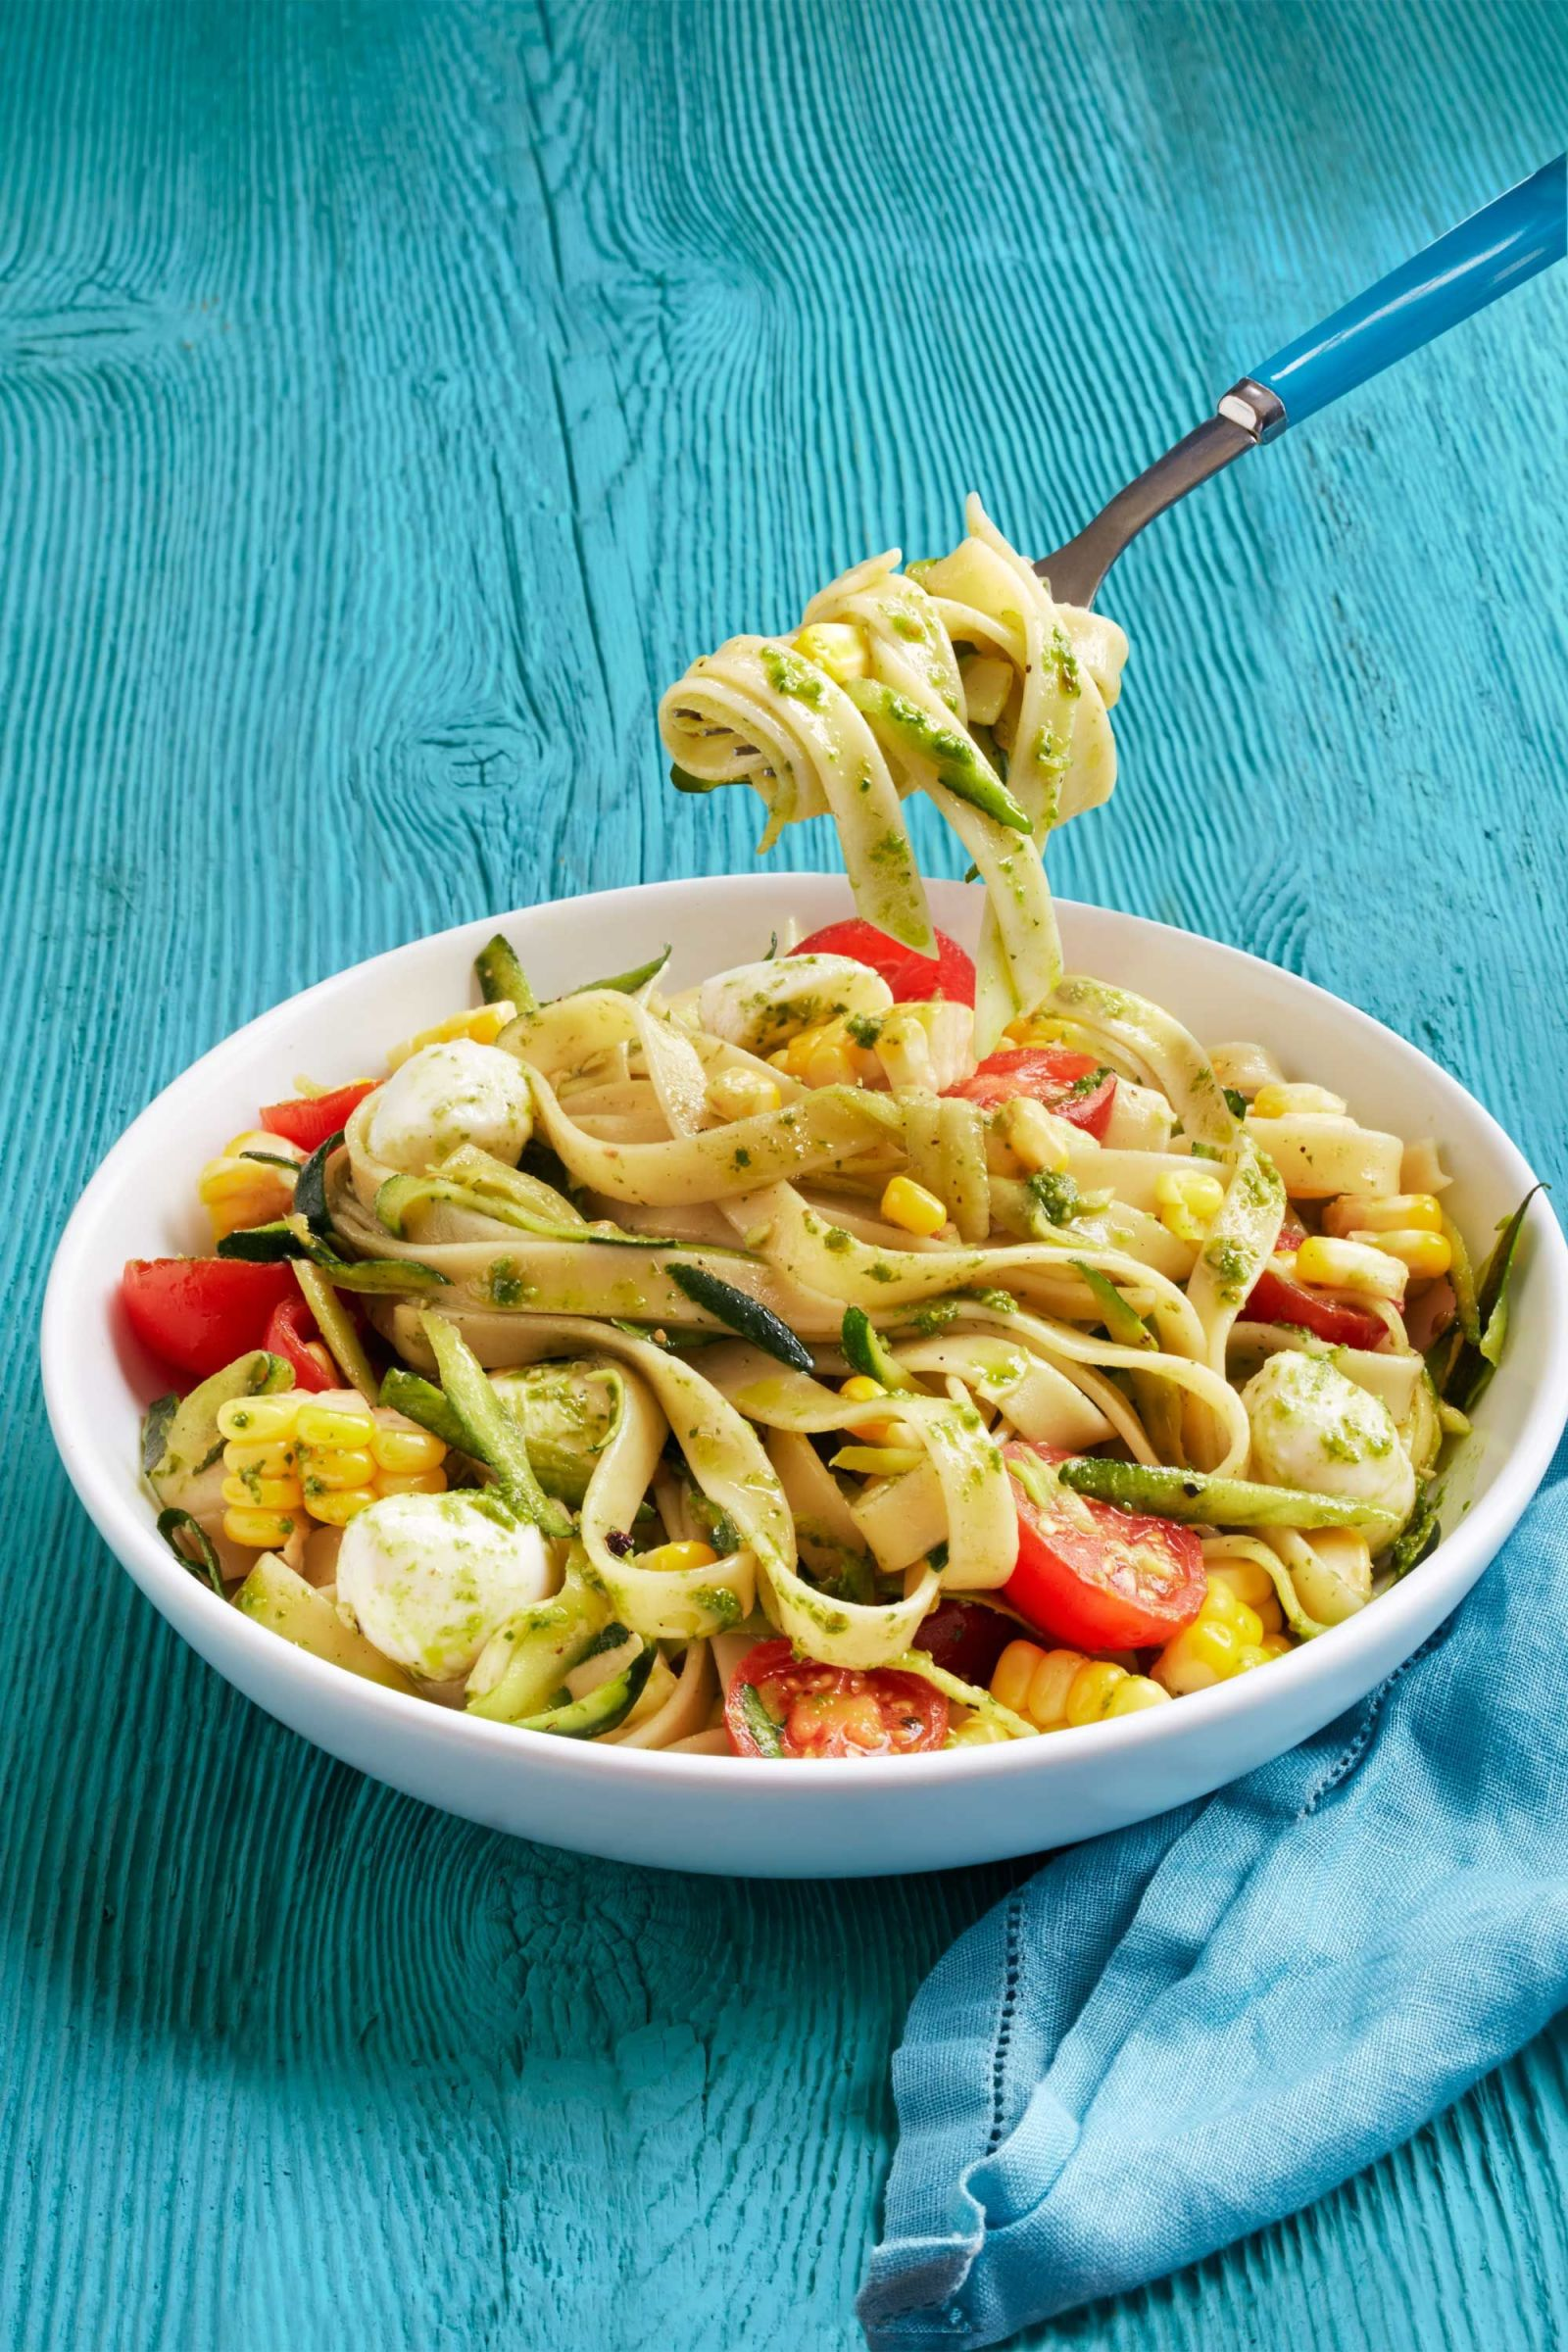 Awesome Keep It Light And Lively With These Noodle Dishes Full Of Fresh Veggies And  Lean Protein